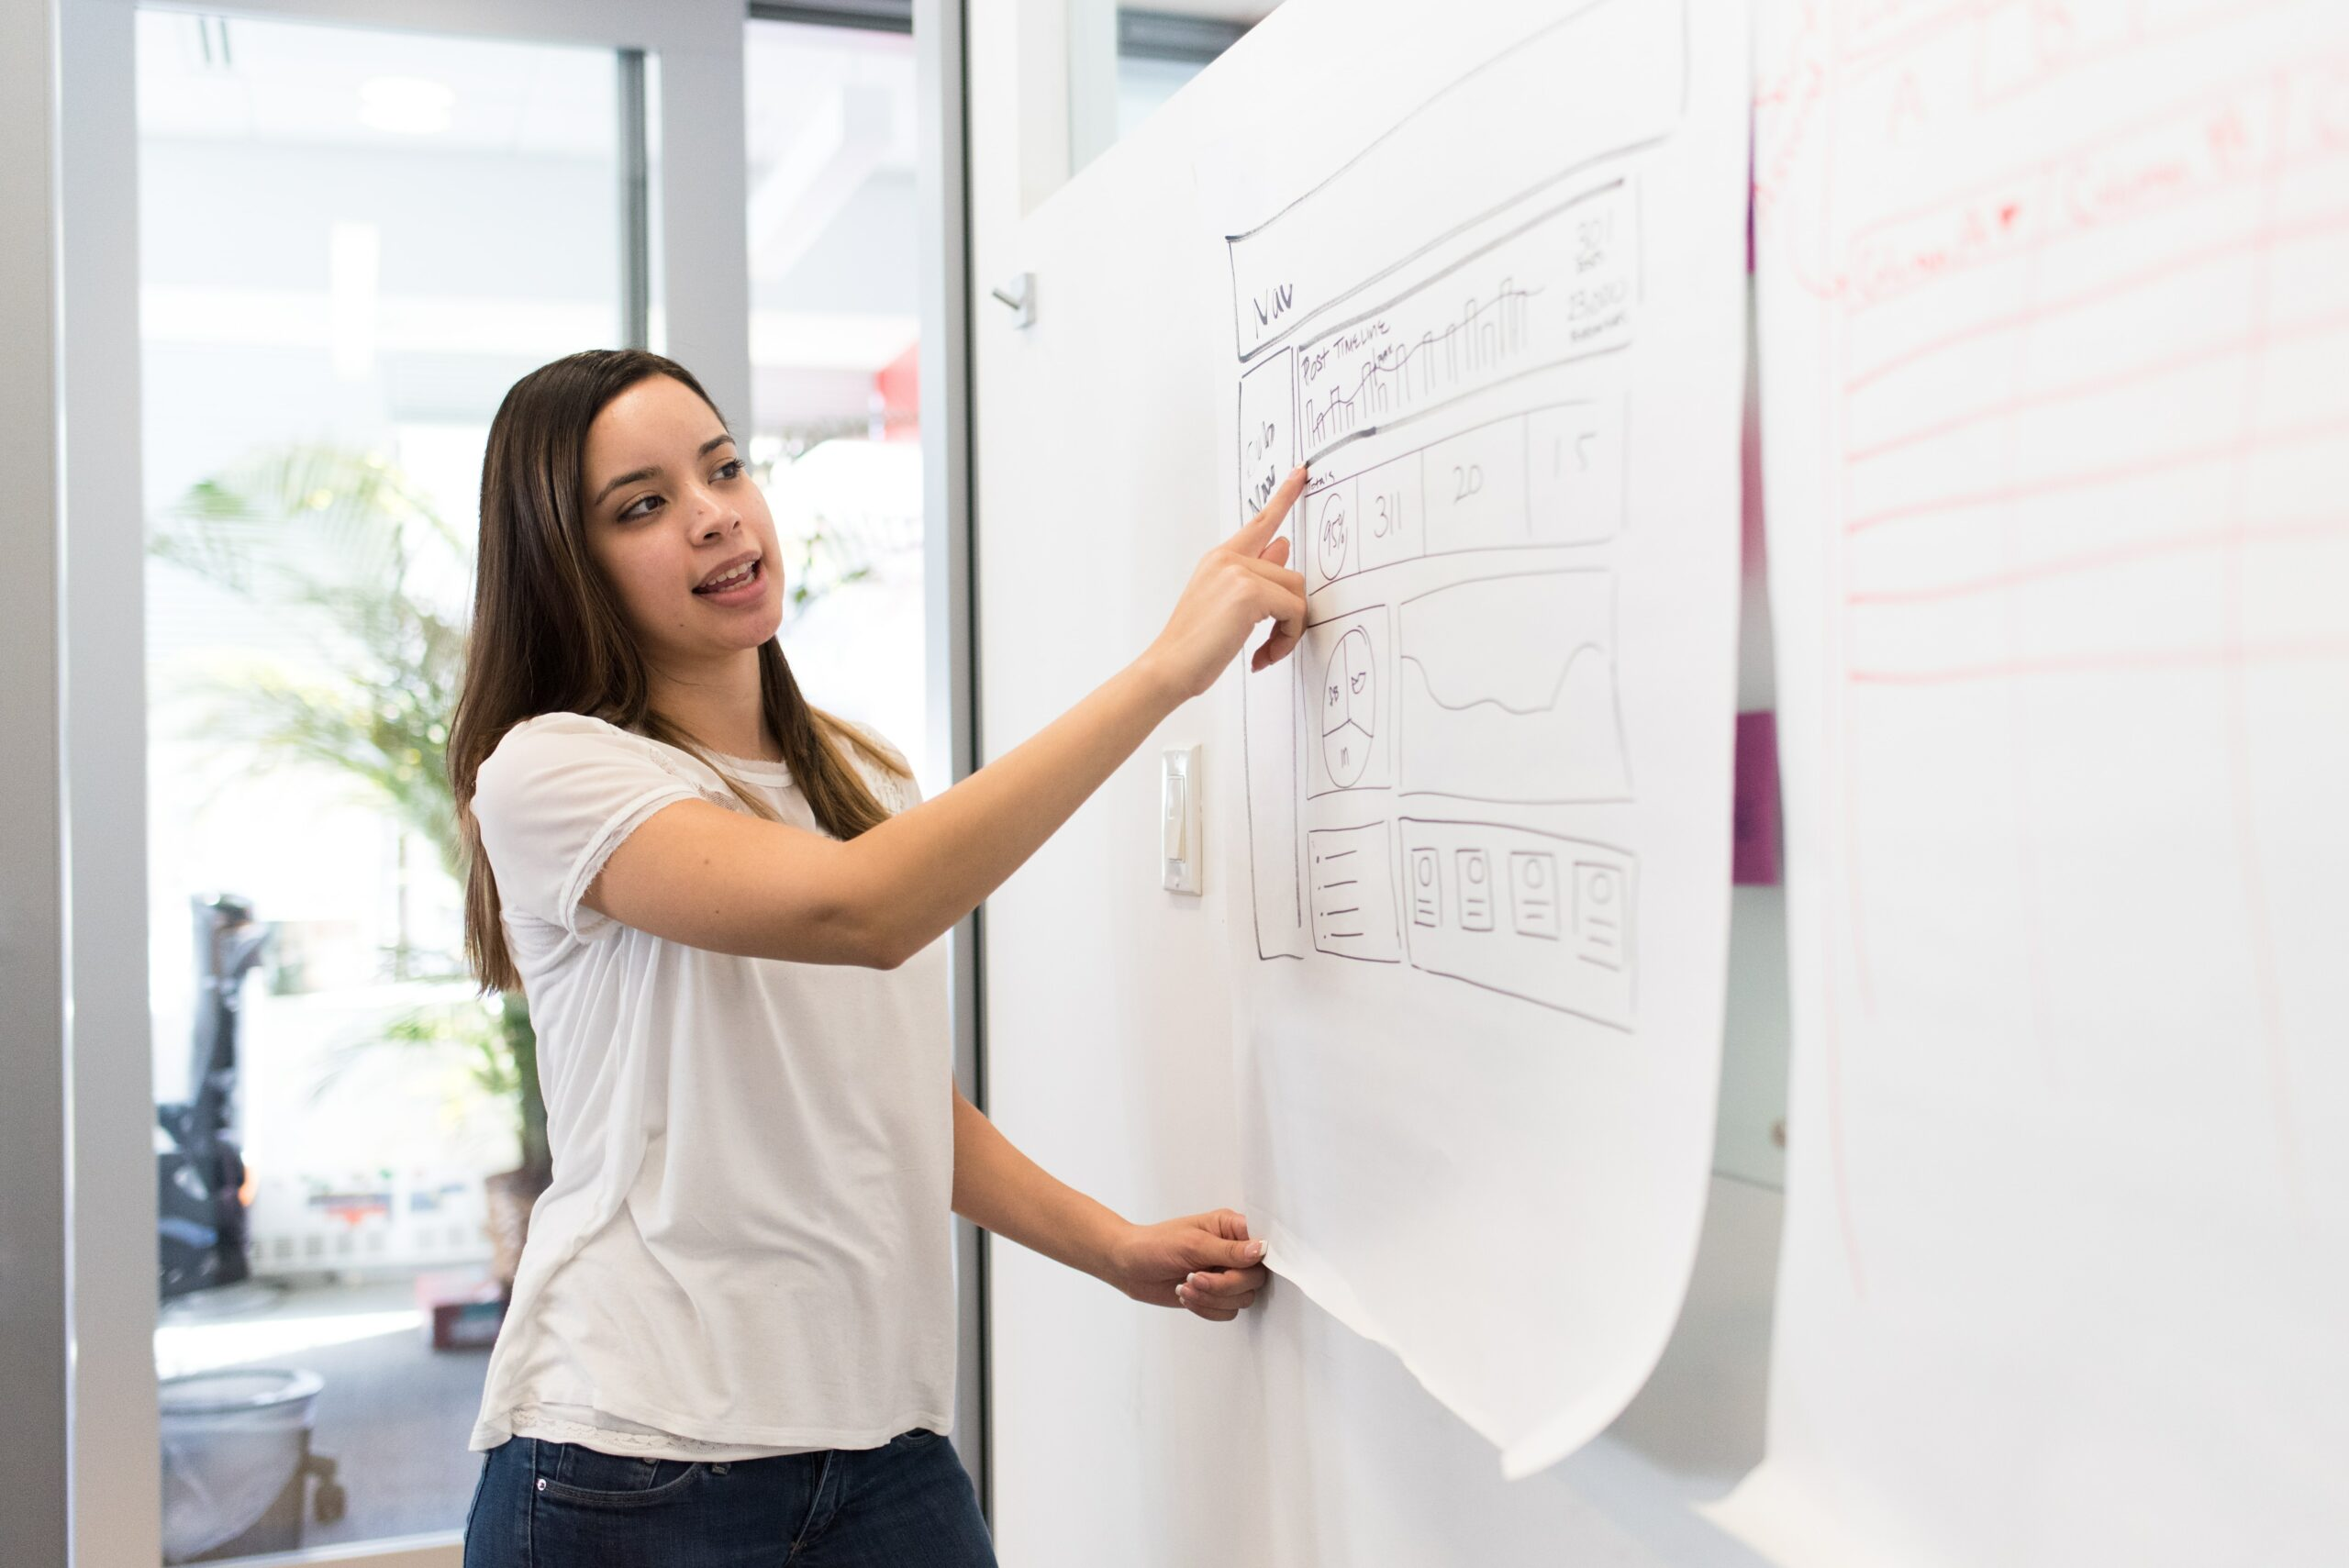 woman pointing at board with diagram